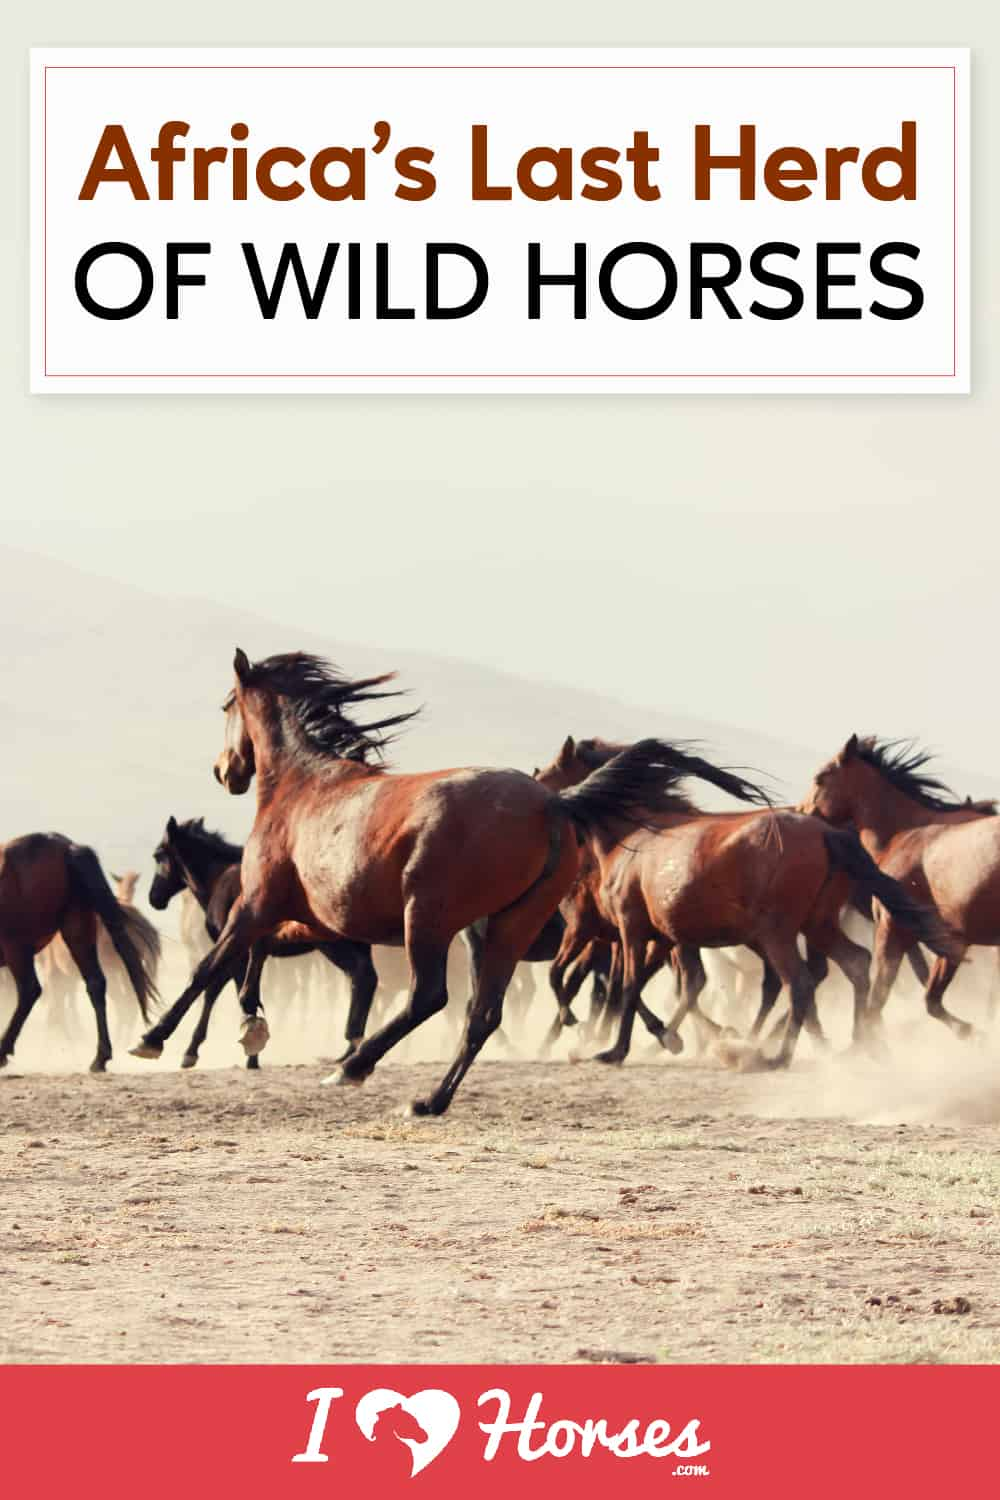 What You Need To Know About Africa's Horses